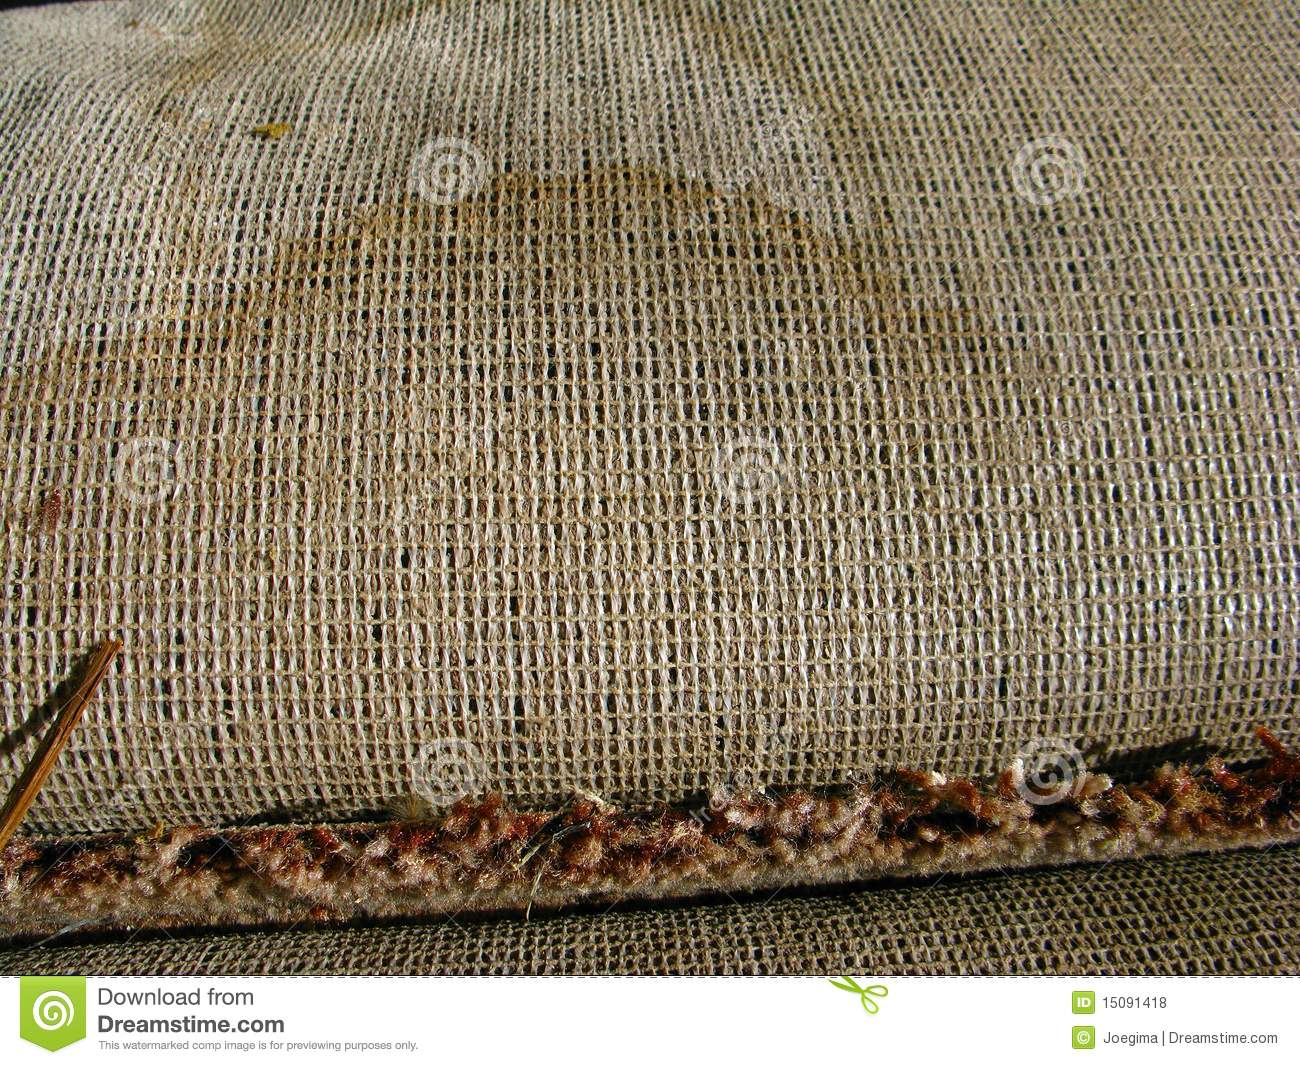 Carpet With Cat Dog Urine Pee Marks 7 3 10 Stock Photo